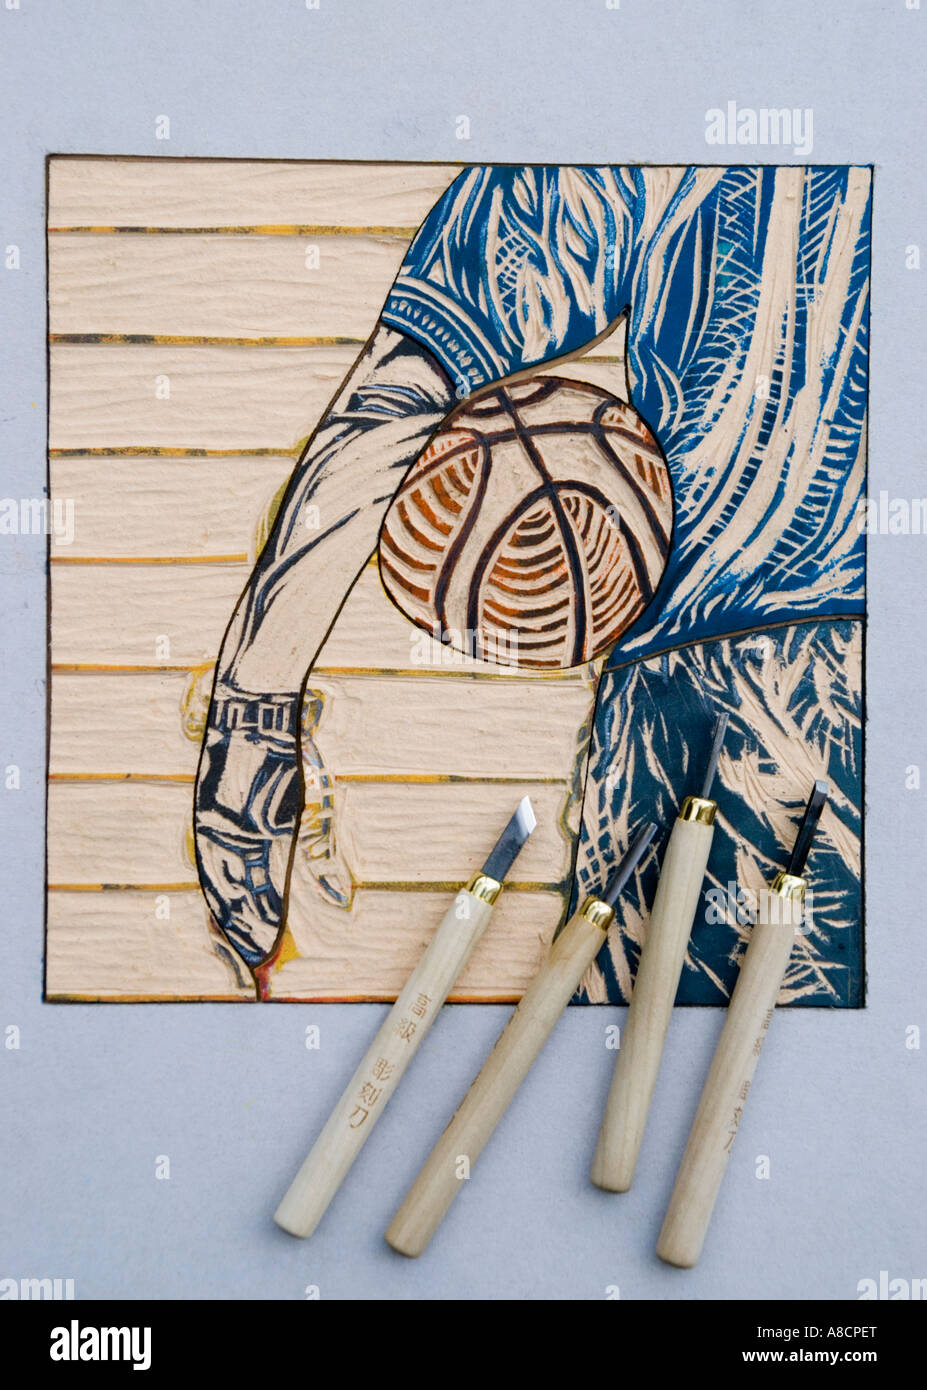 A woodcut block by artist Sulyn Lam - Stock Image